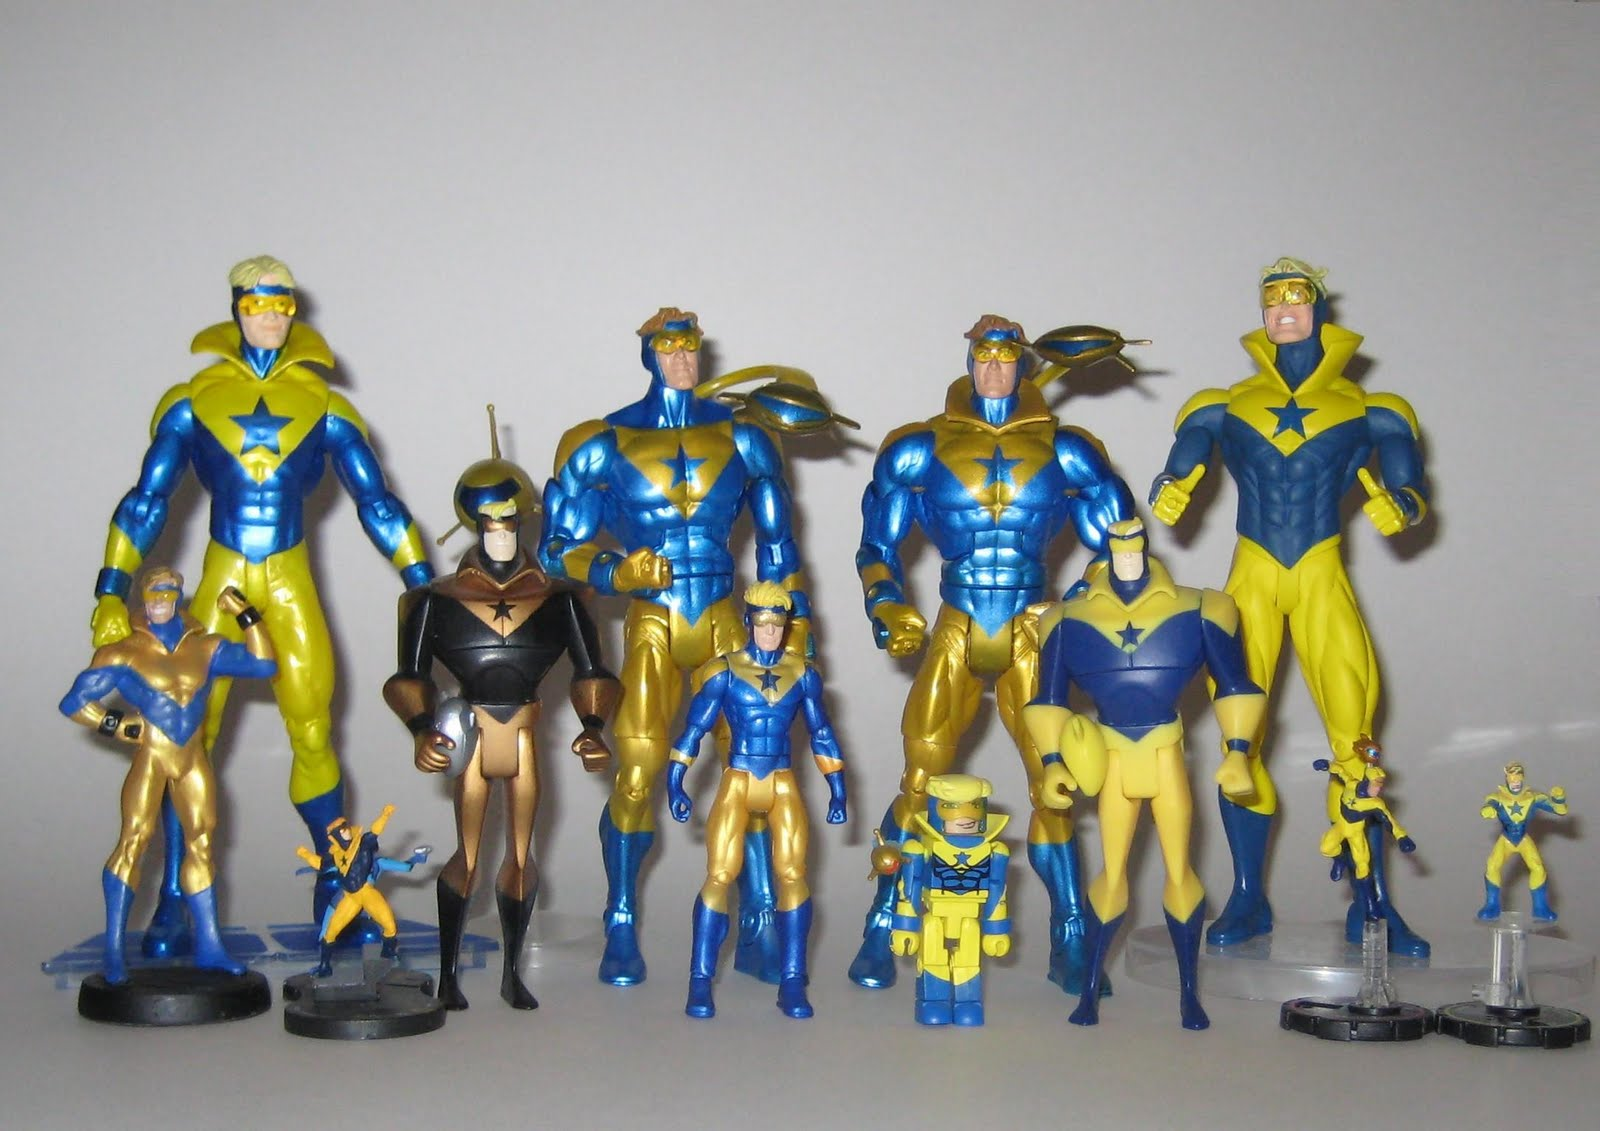 The Blot Says The Complete Booster Gold Toy Collection